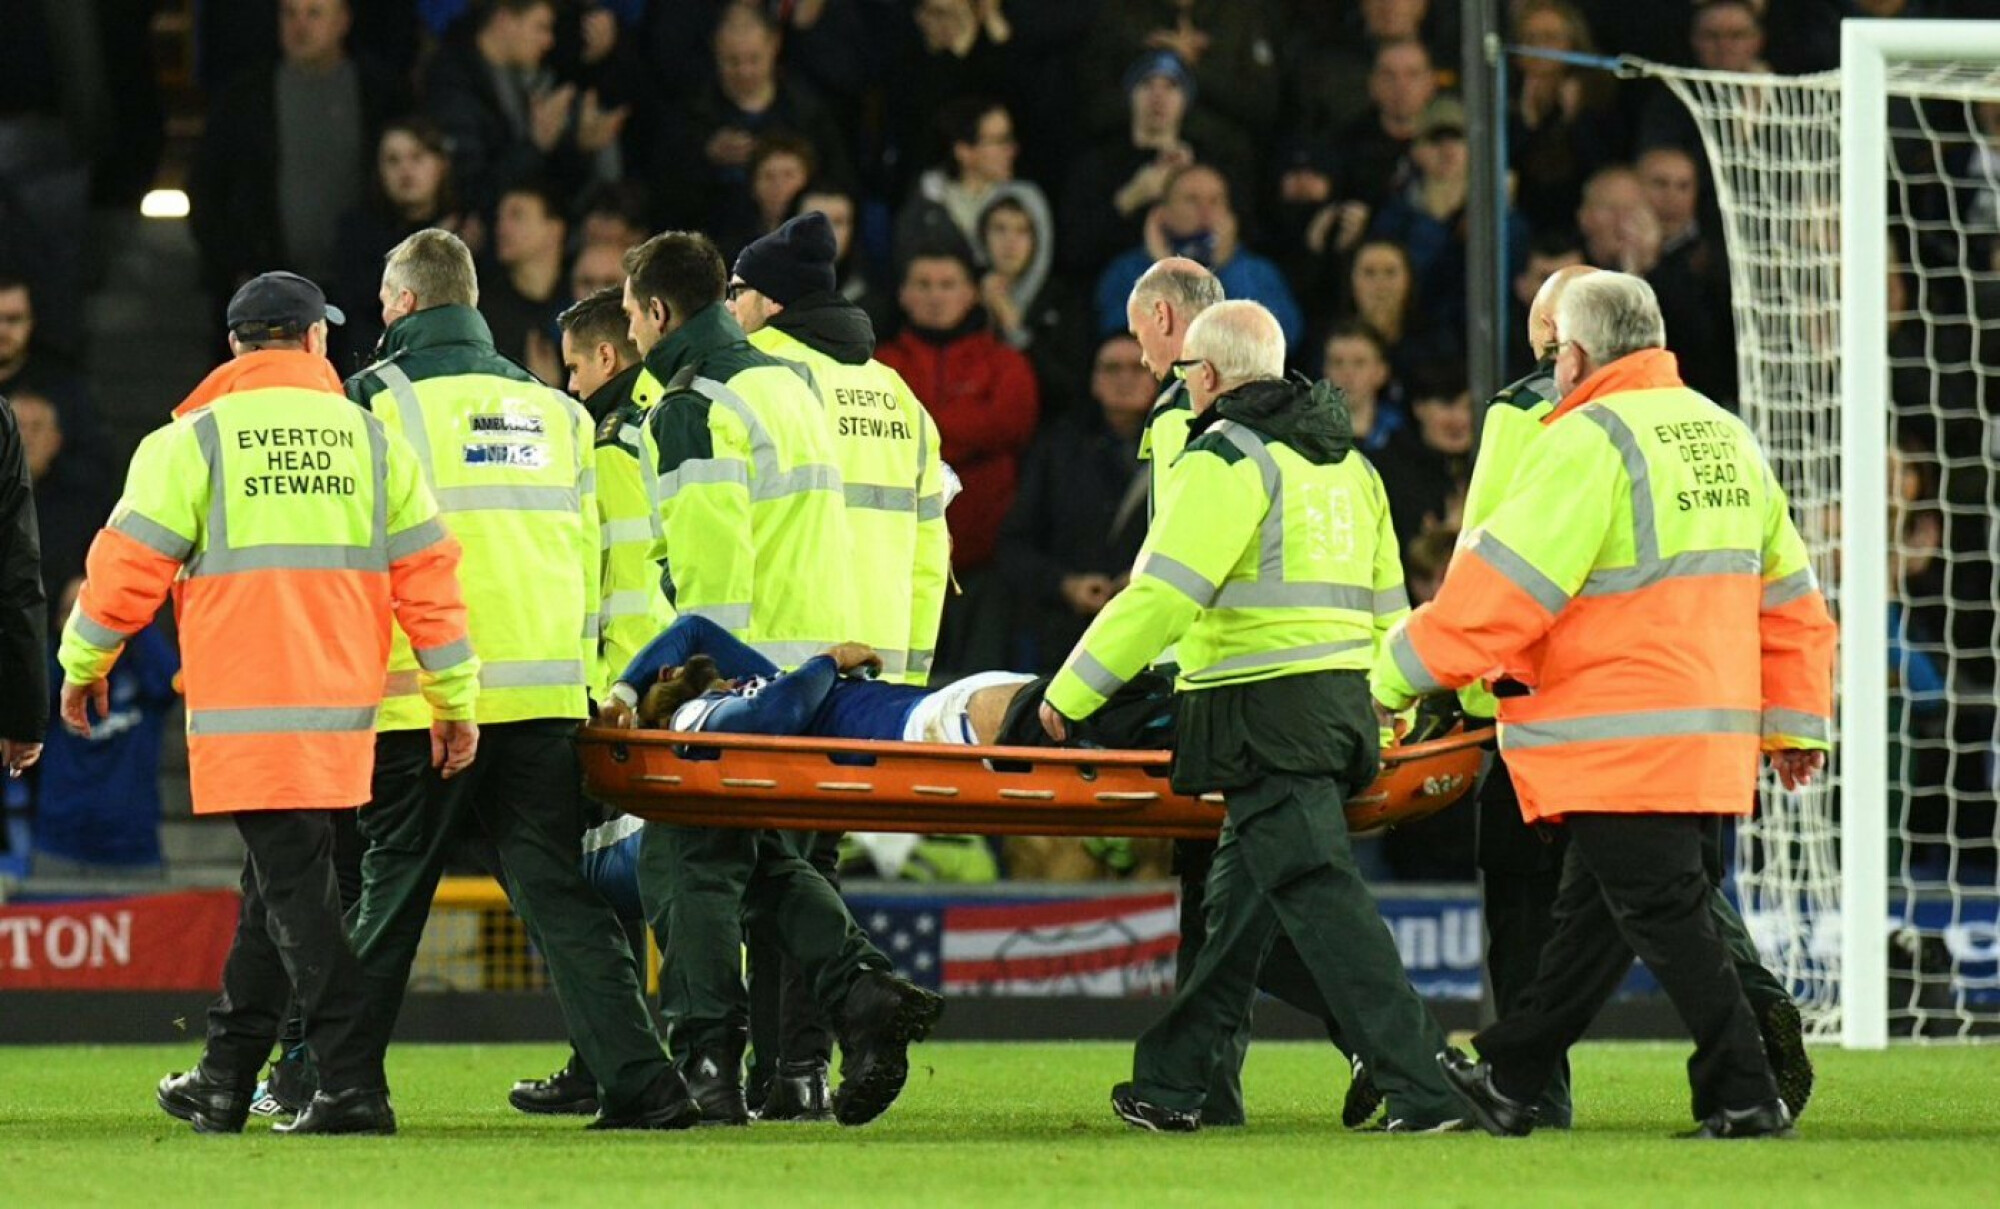 Andre Gomes sufferer horrific injury in yet another away day misery for Tottenham